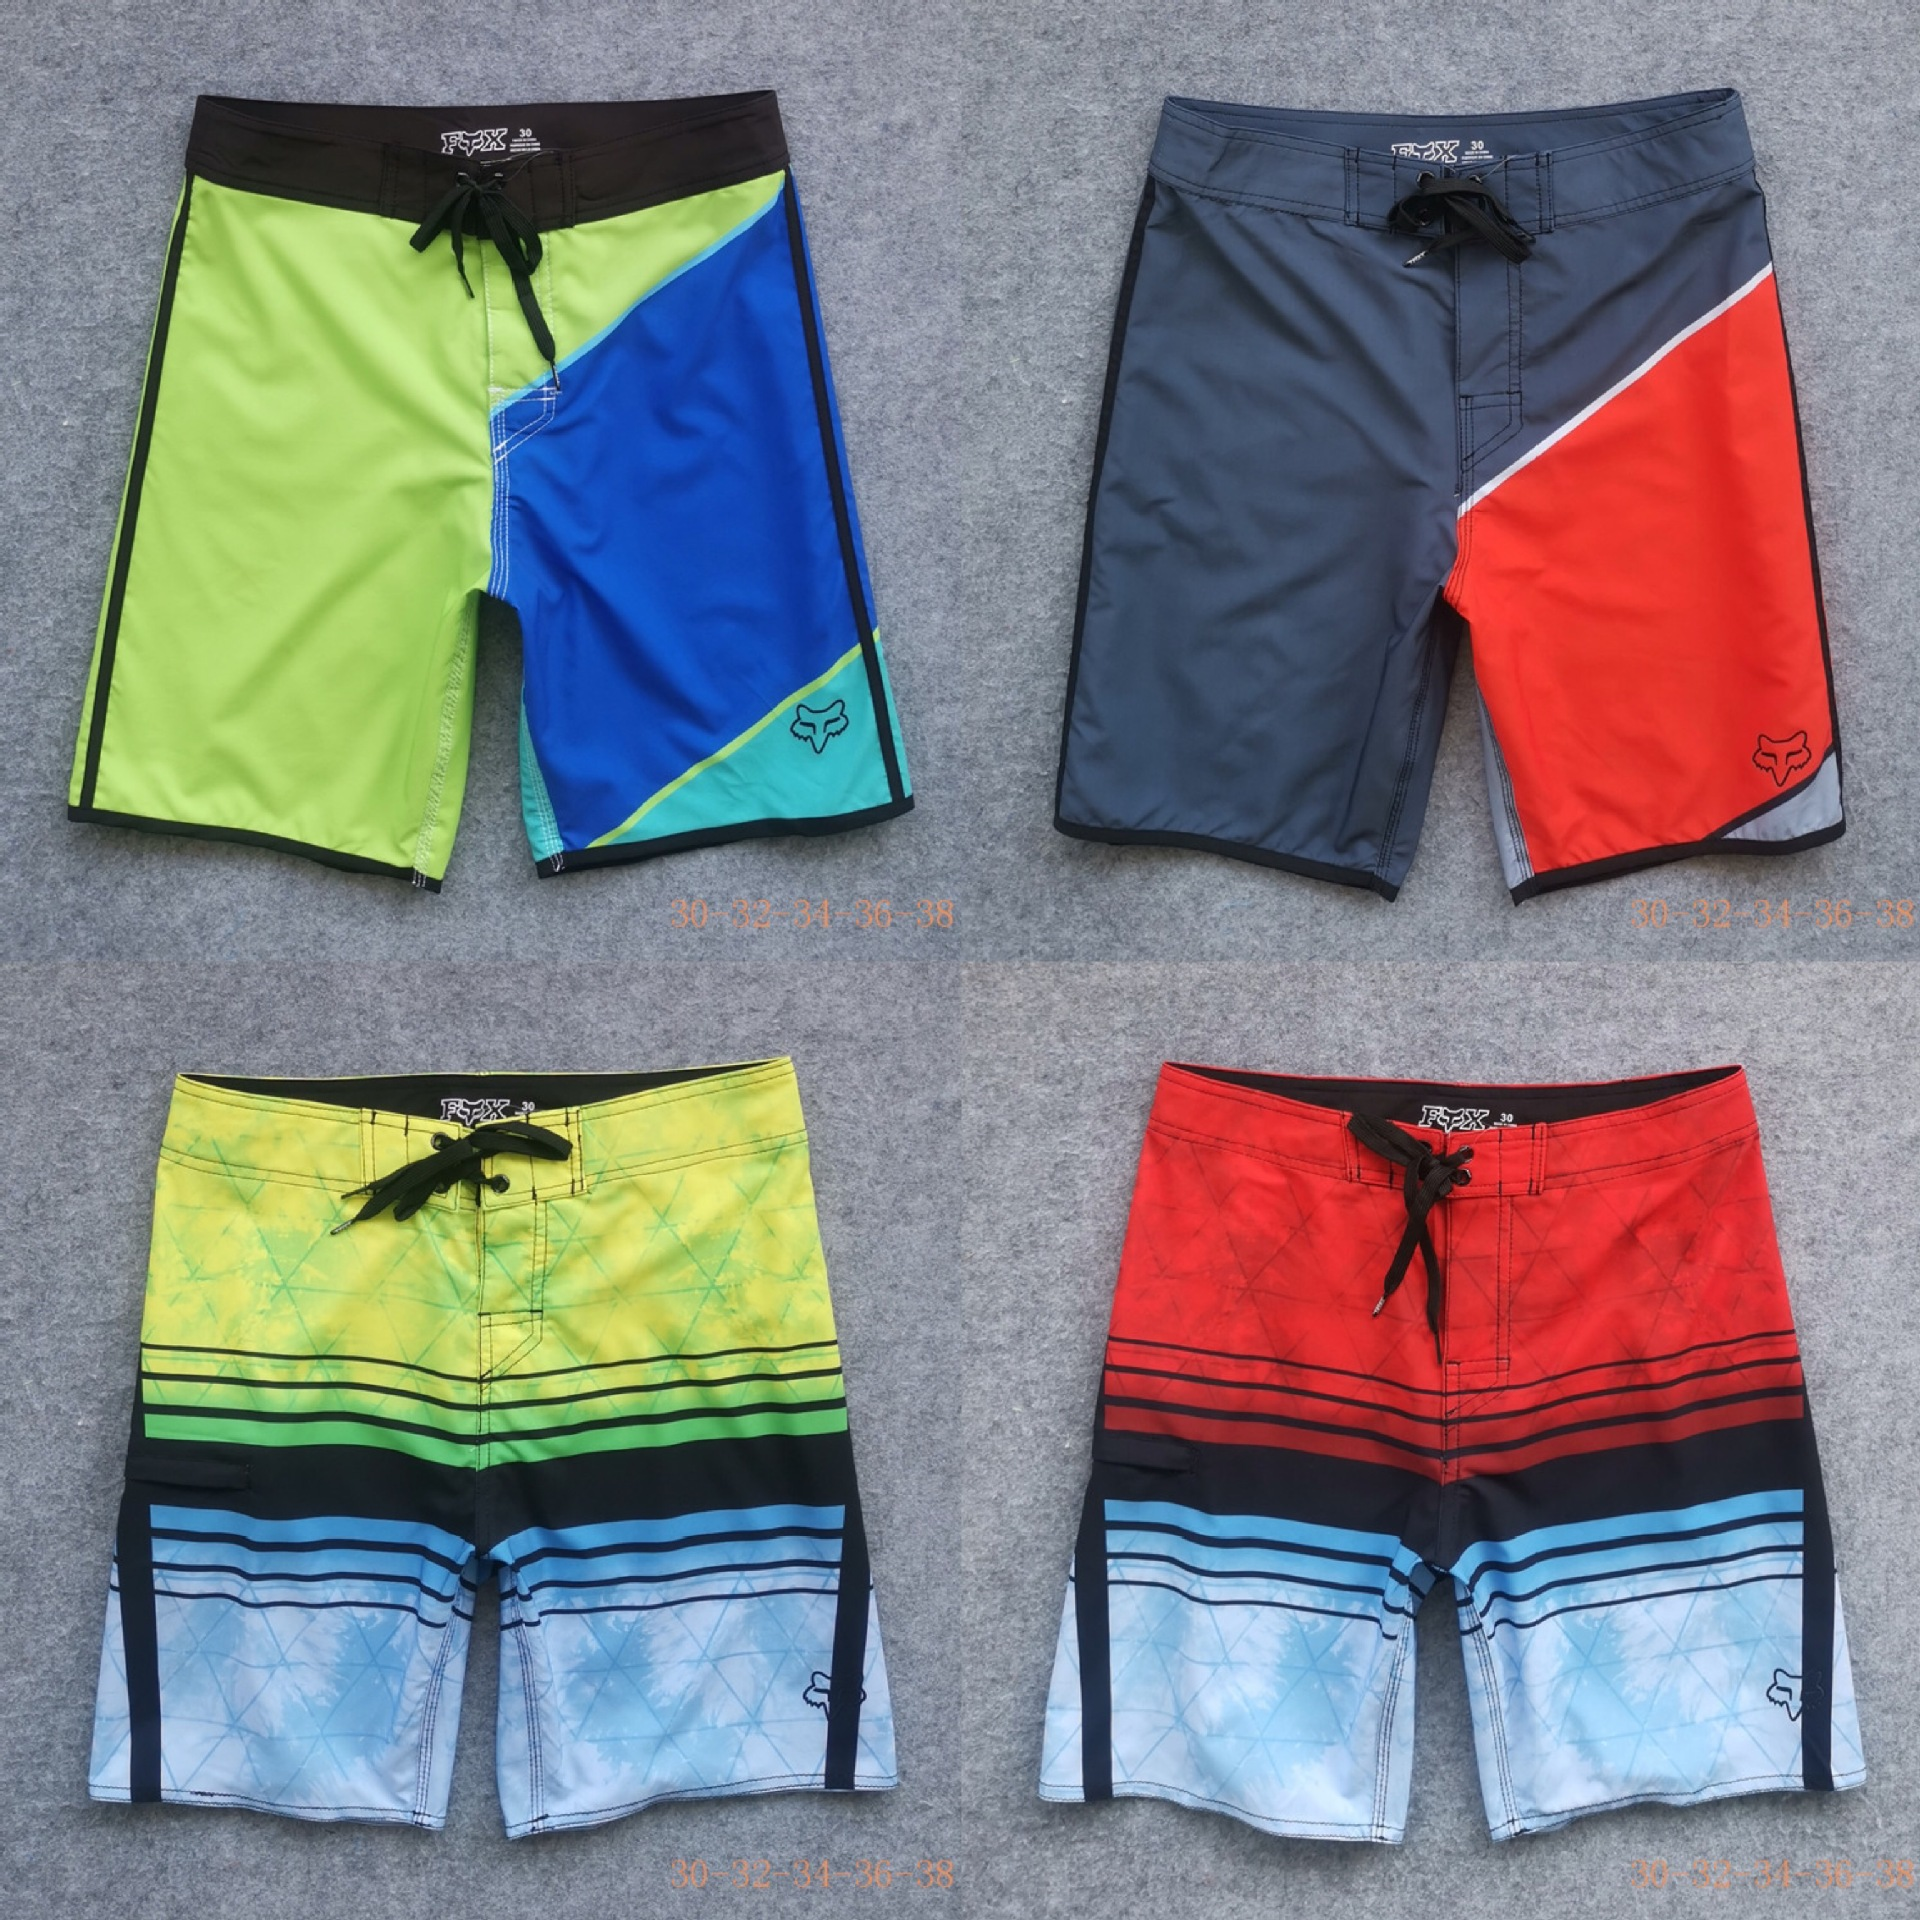 Spandex Fox Beach Shorts Men's Trousers Sports Boardshort Household Outdoor Race Car Rider Casual Pants